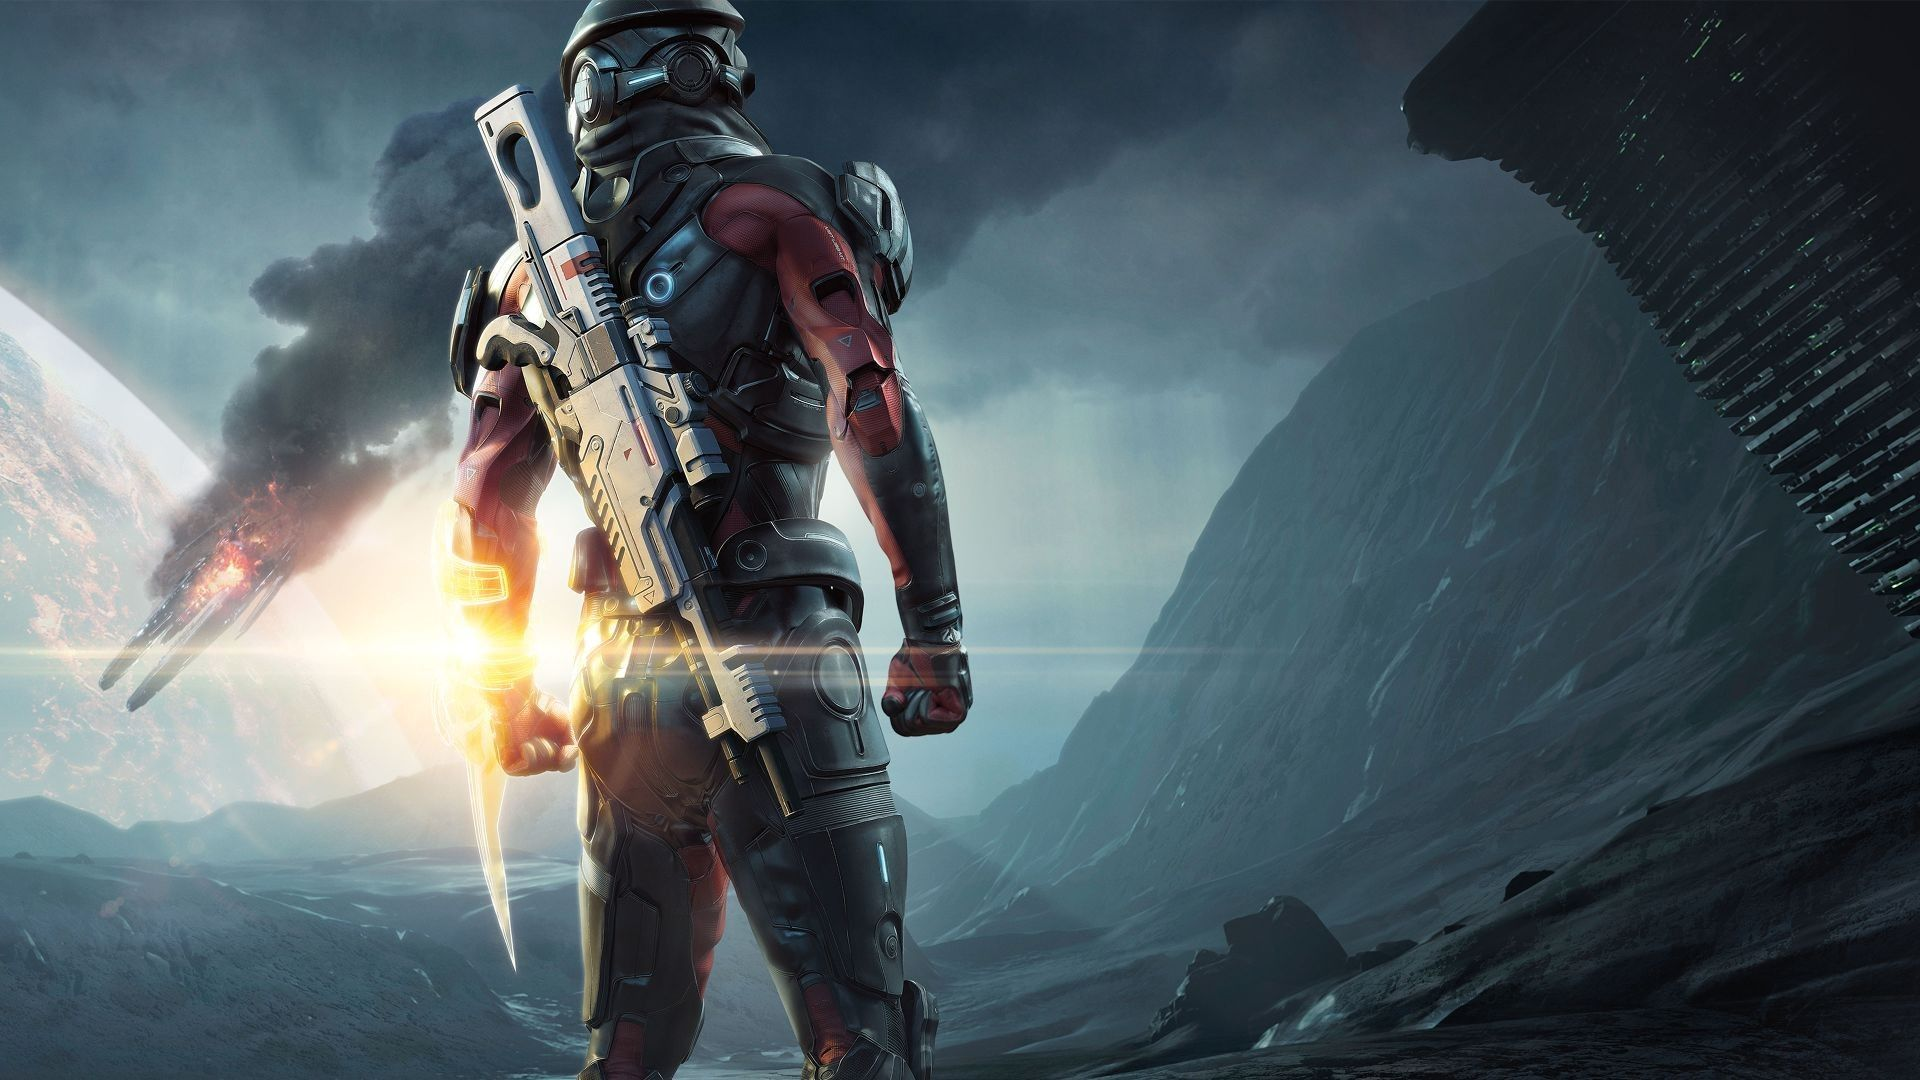 mass effect: andromeda wallpapers cool hd   mass effect: andromeda